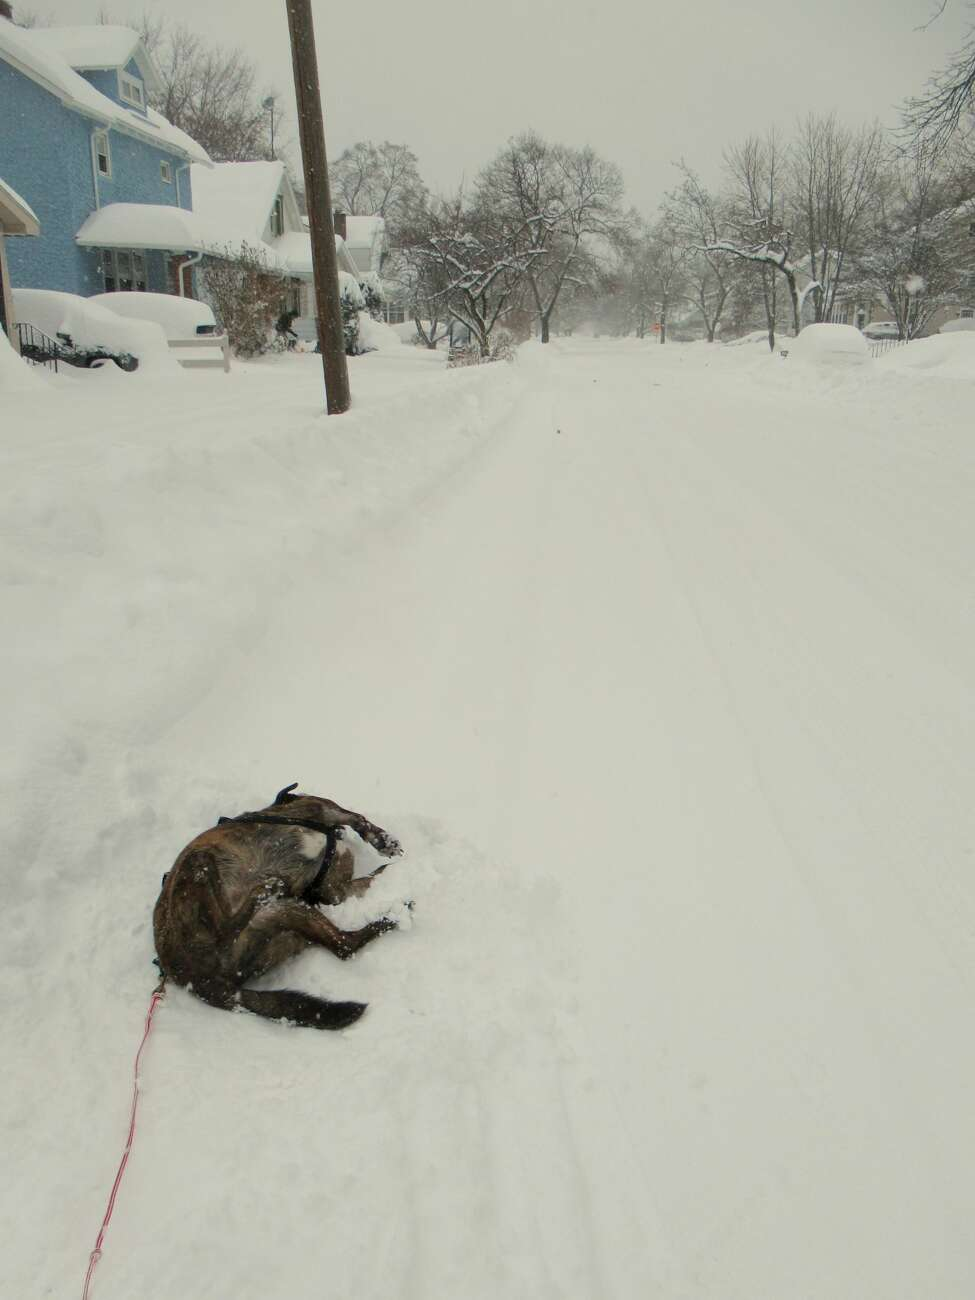 Rocky the dog pauses during a ski outing on Schenectady streets to roll in the snow. (Gillian Scott / Special to the Times Union)